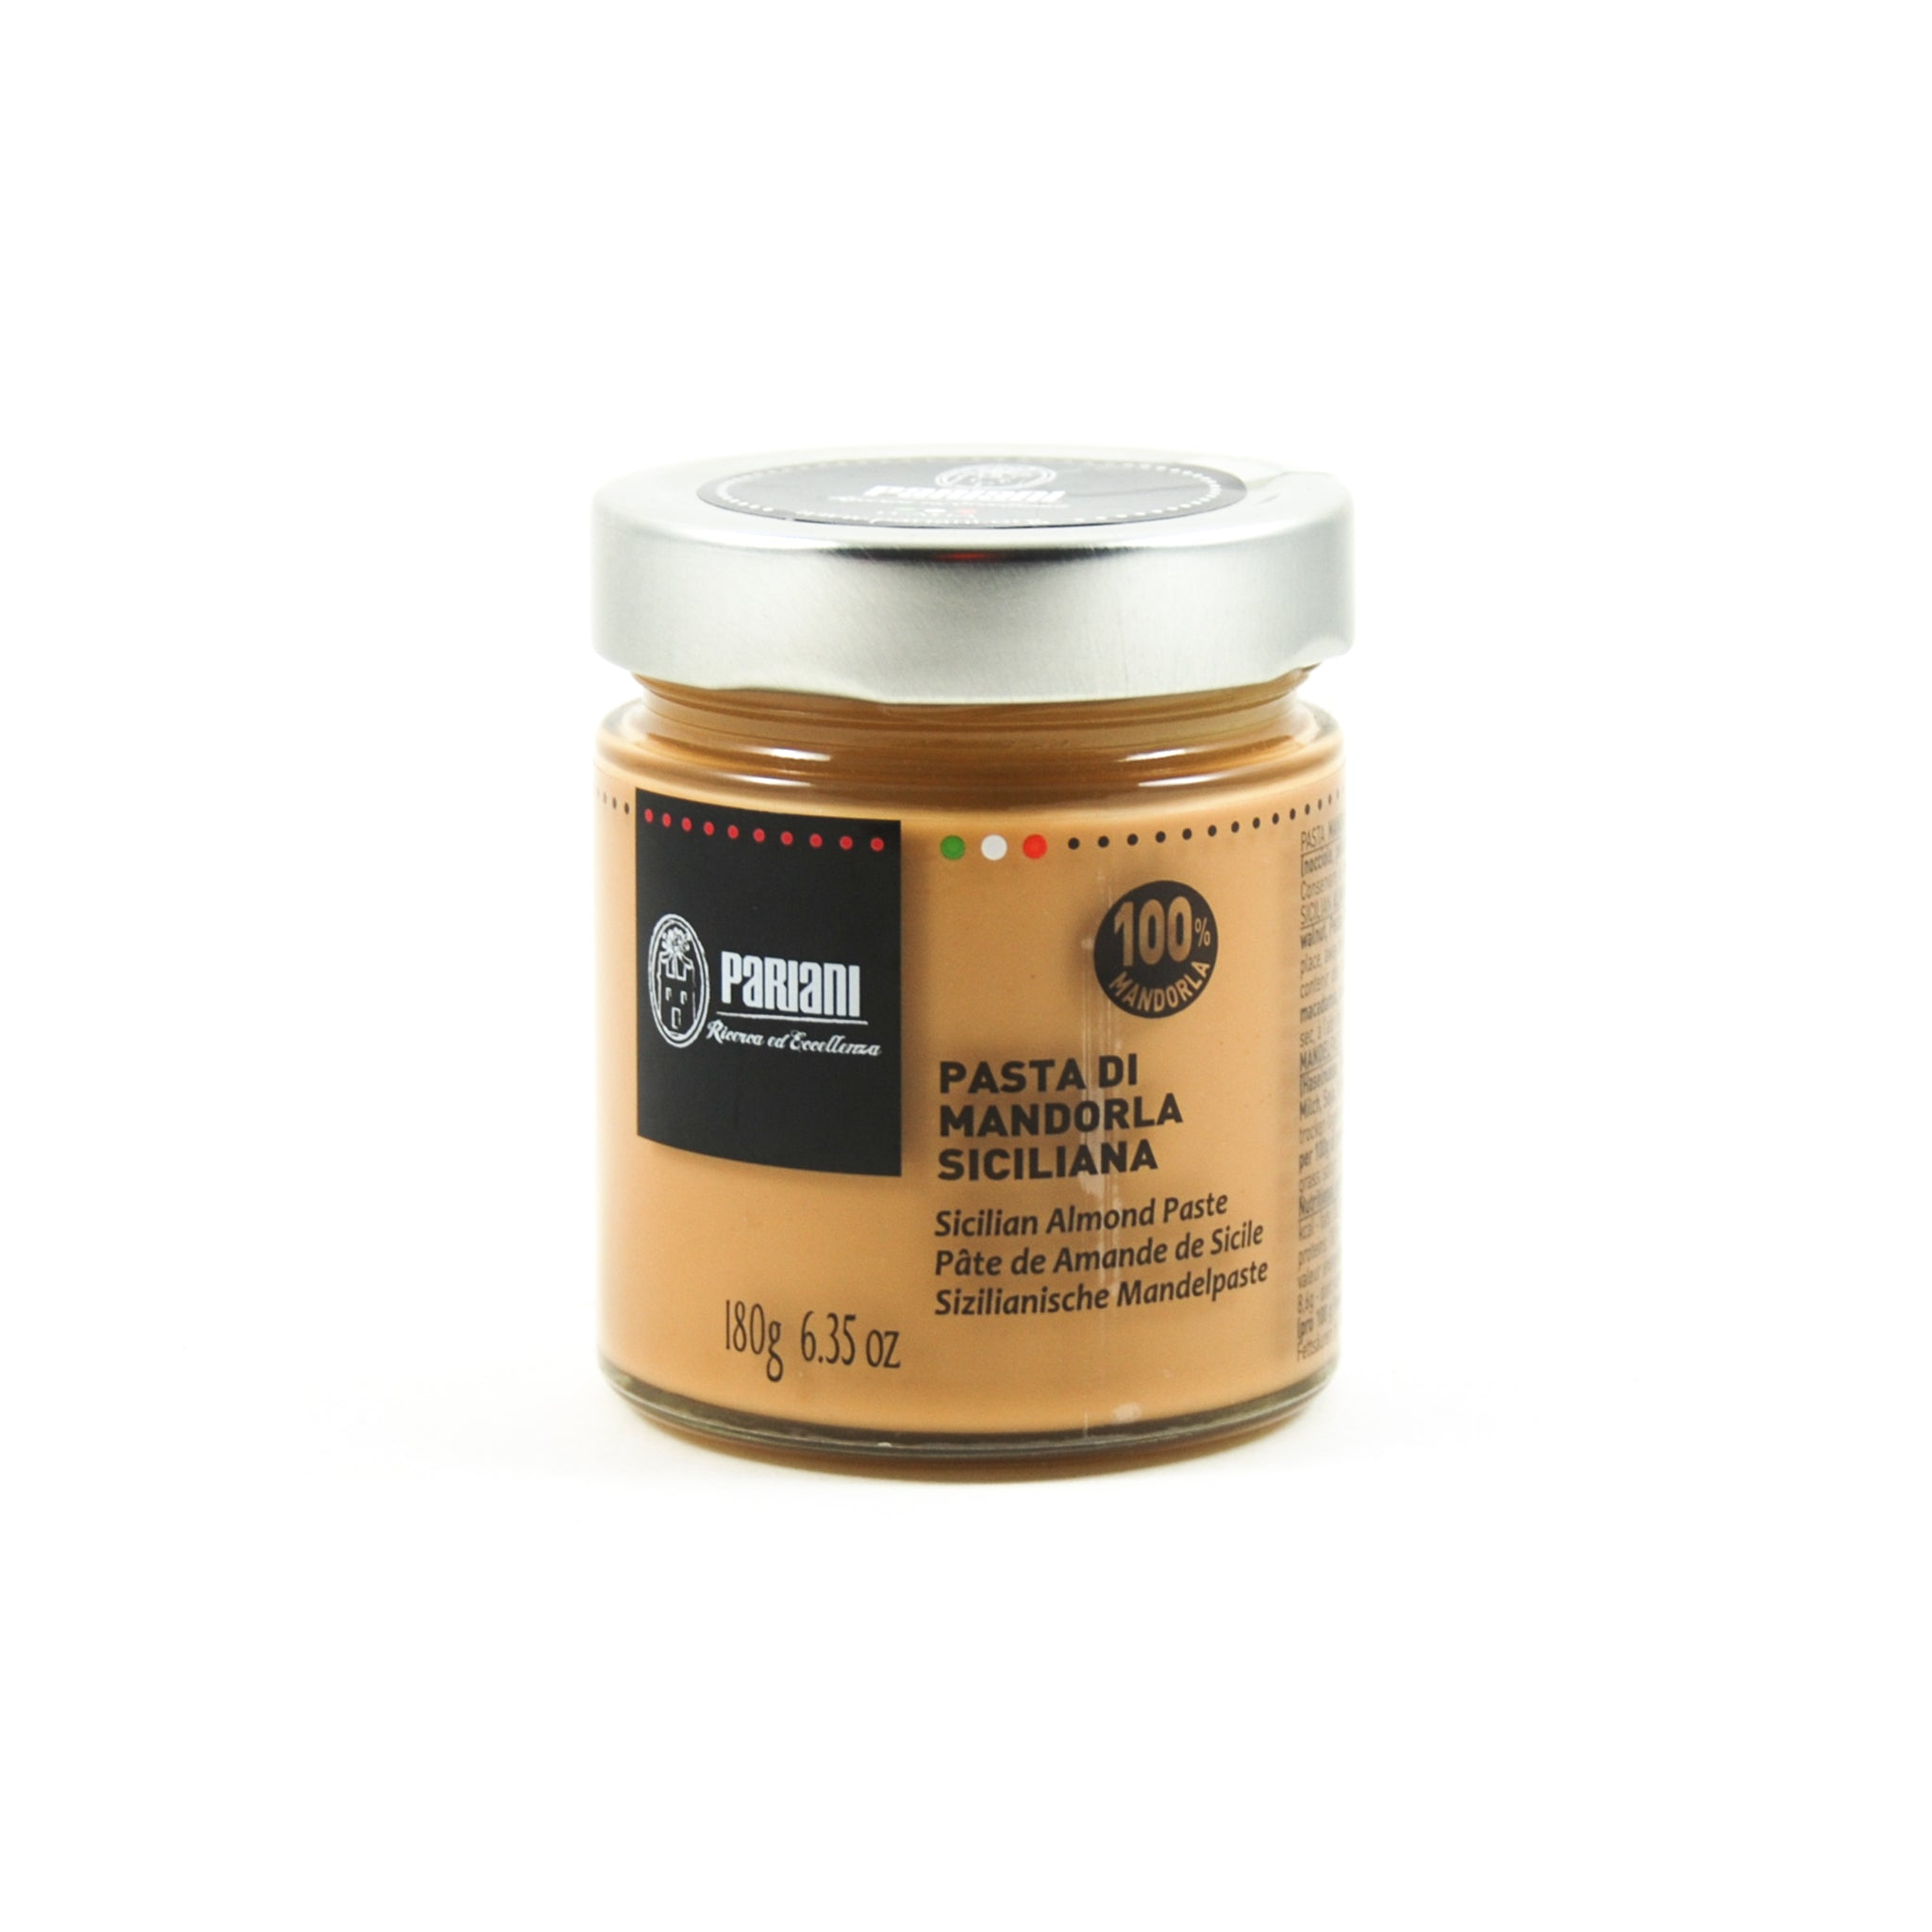 Pariani Sicilian Almond Paste 180g Ingredients Baking Ingredients Baking Nuts & Nut Pastes Italian Food